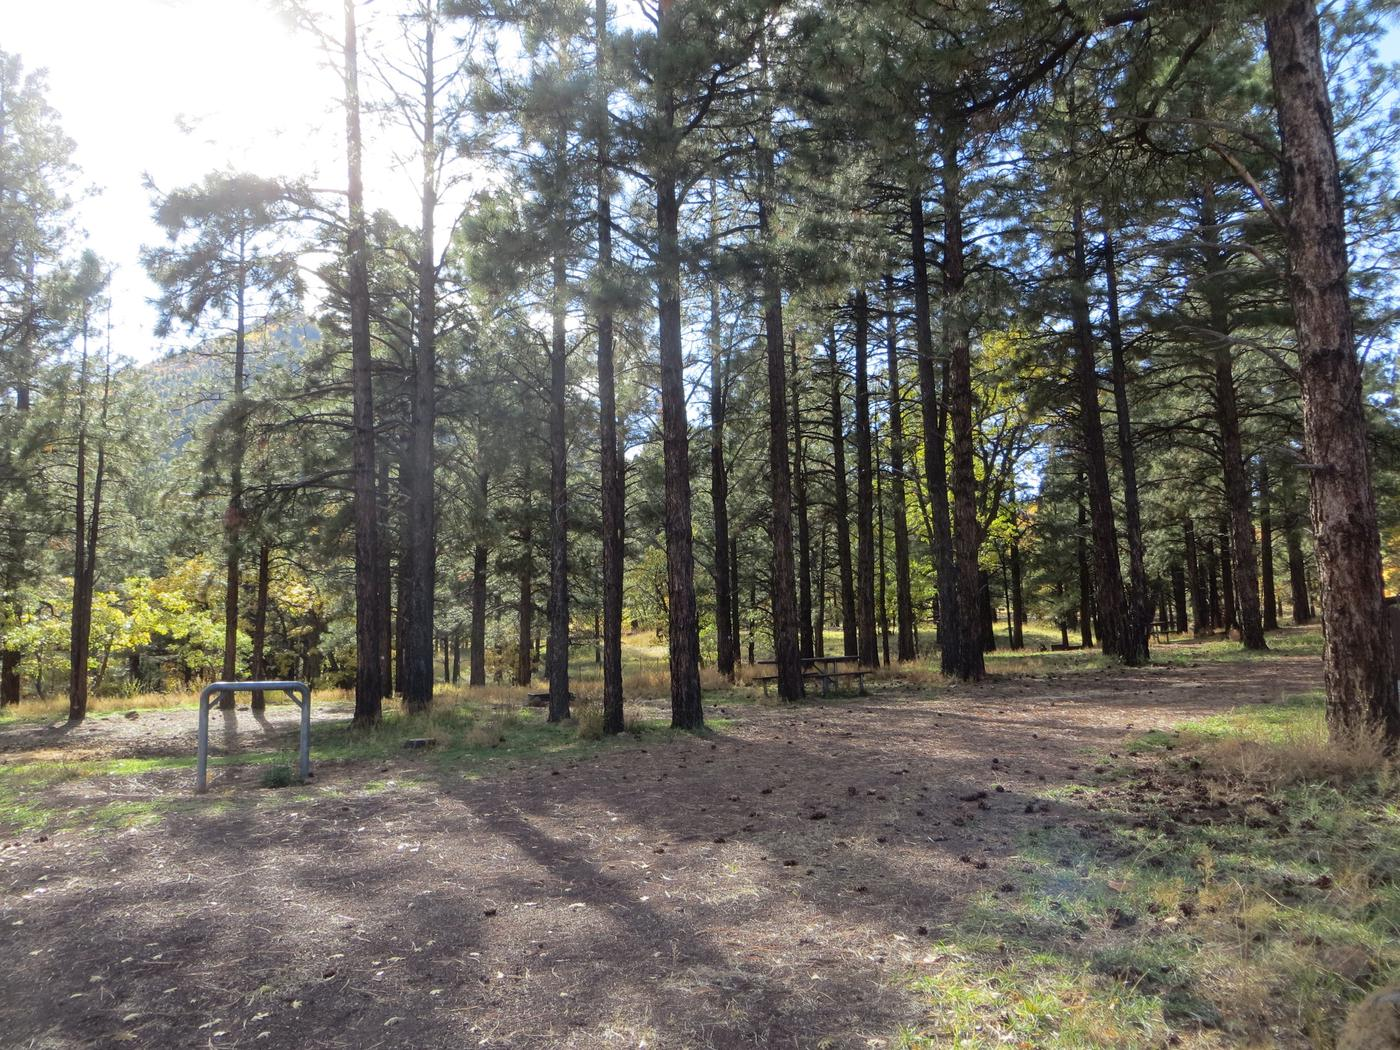 Little Eldon Springs Horse Camp site #04 with full view of wooded campsite, picnic area, and hitching post.